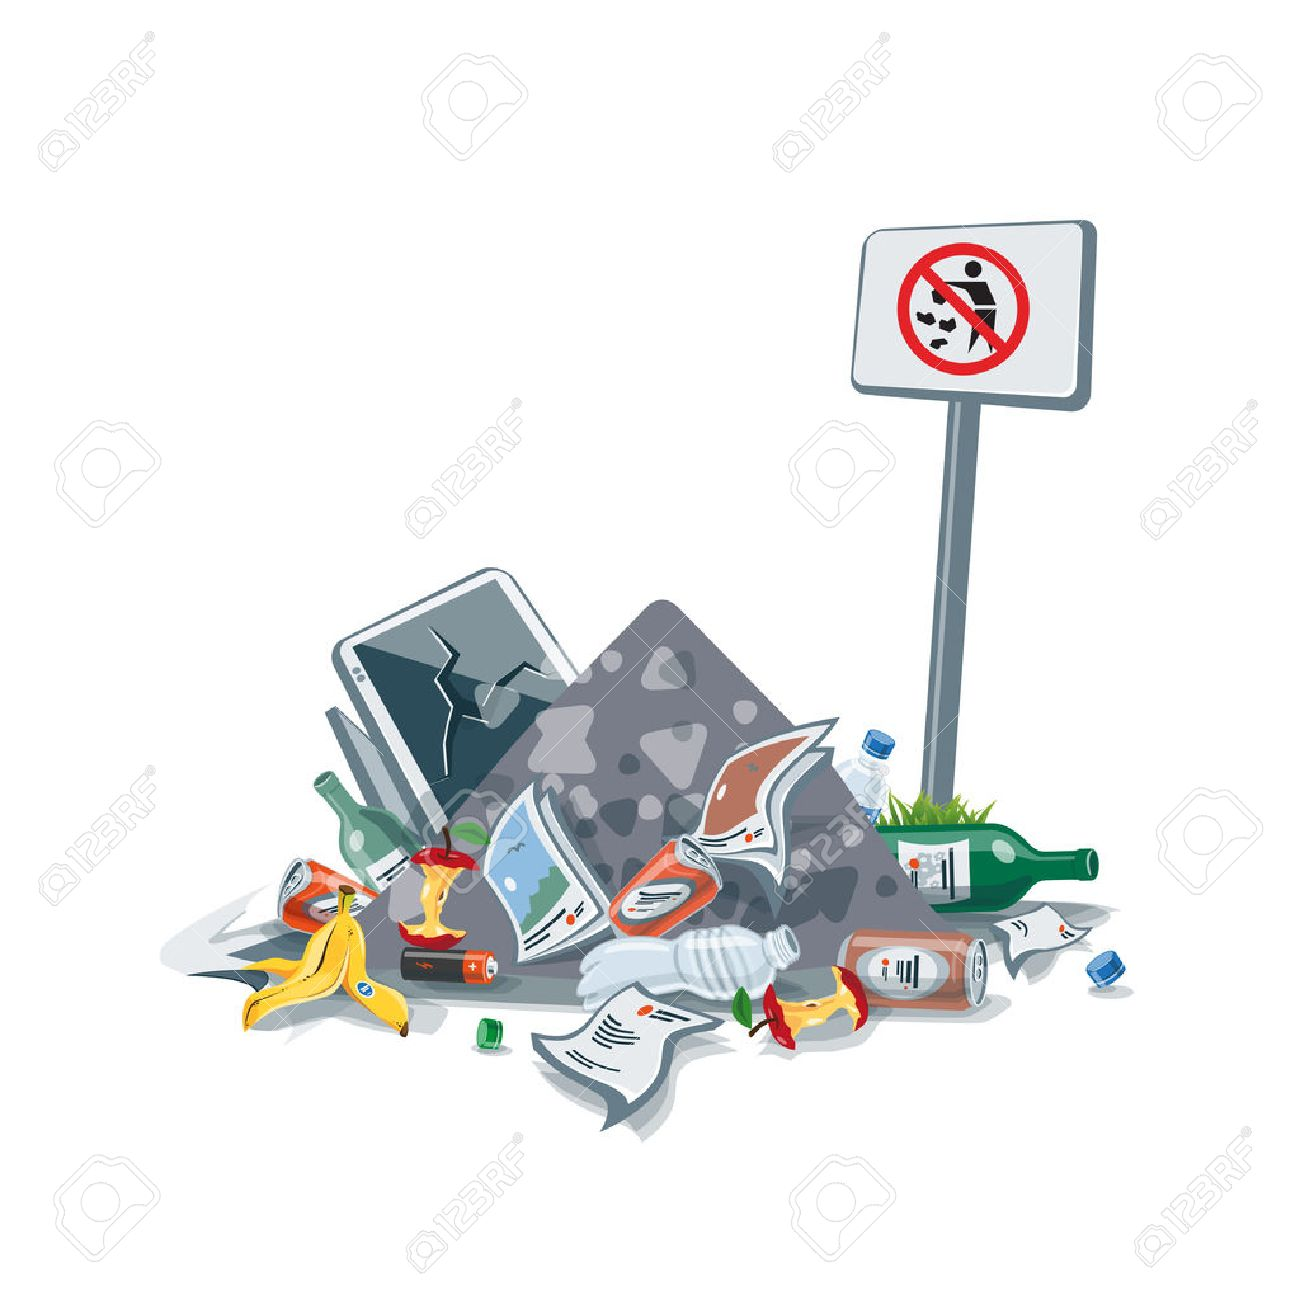 illustration of littering waste pile that have been disposed improperly, without consent, at an inappropriate location near the No littering sign board. Trash is fallen on the ground and creates a big stack. - 55840795